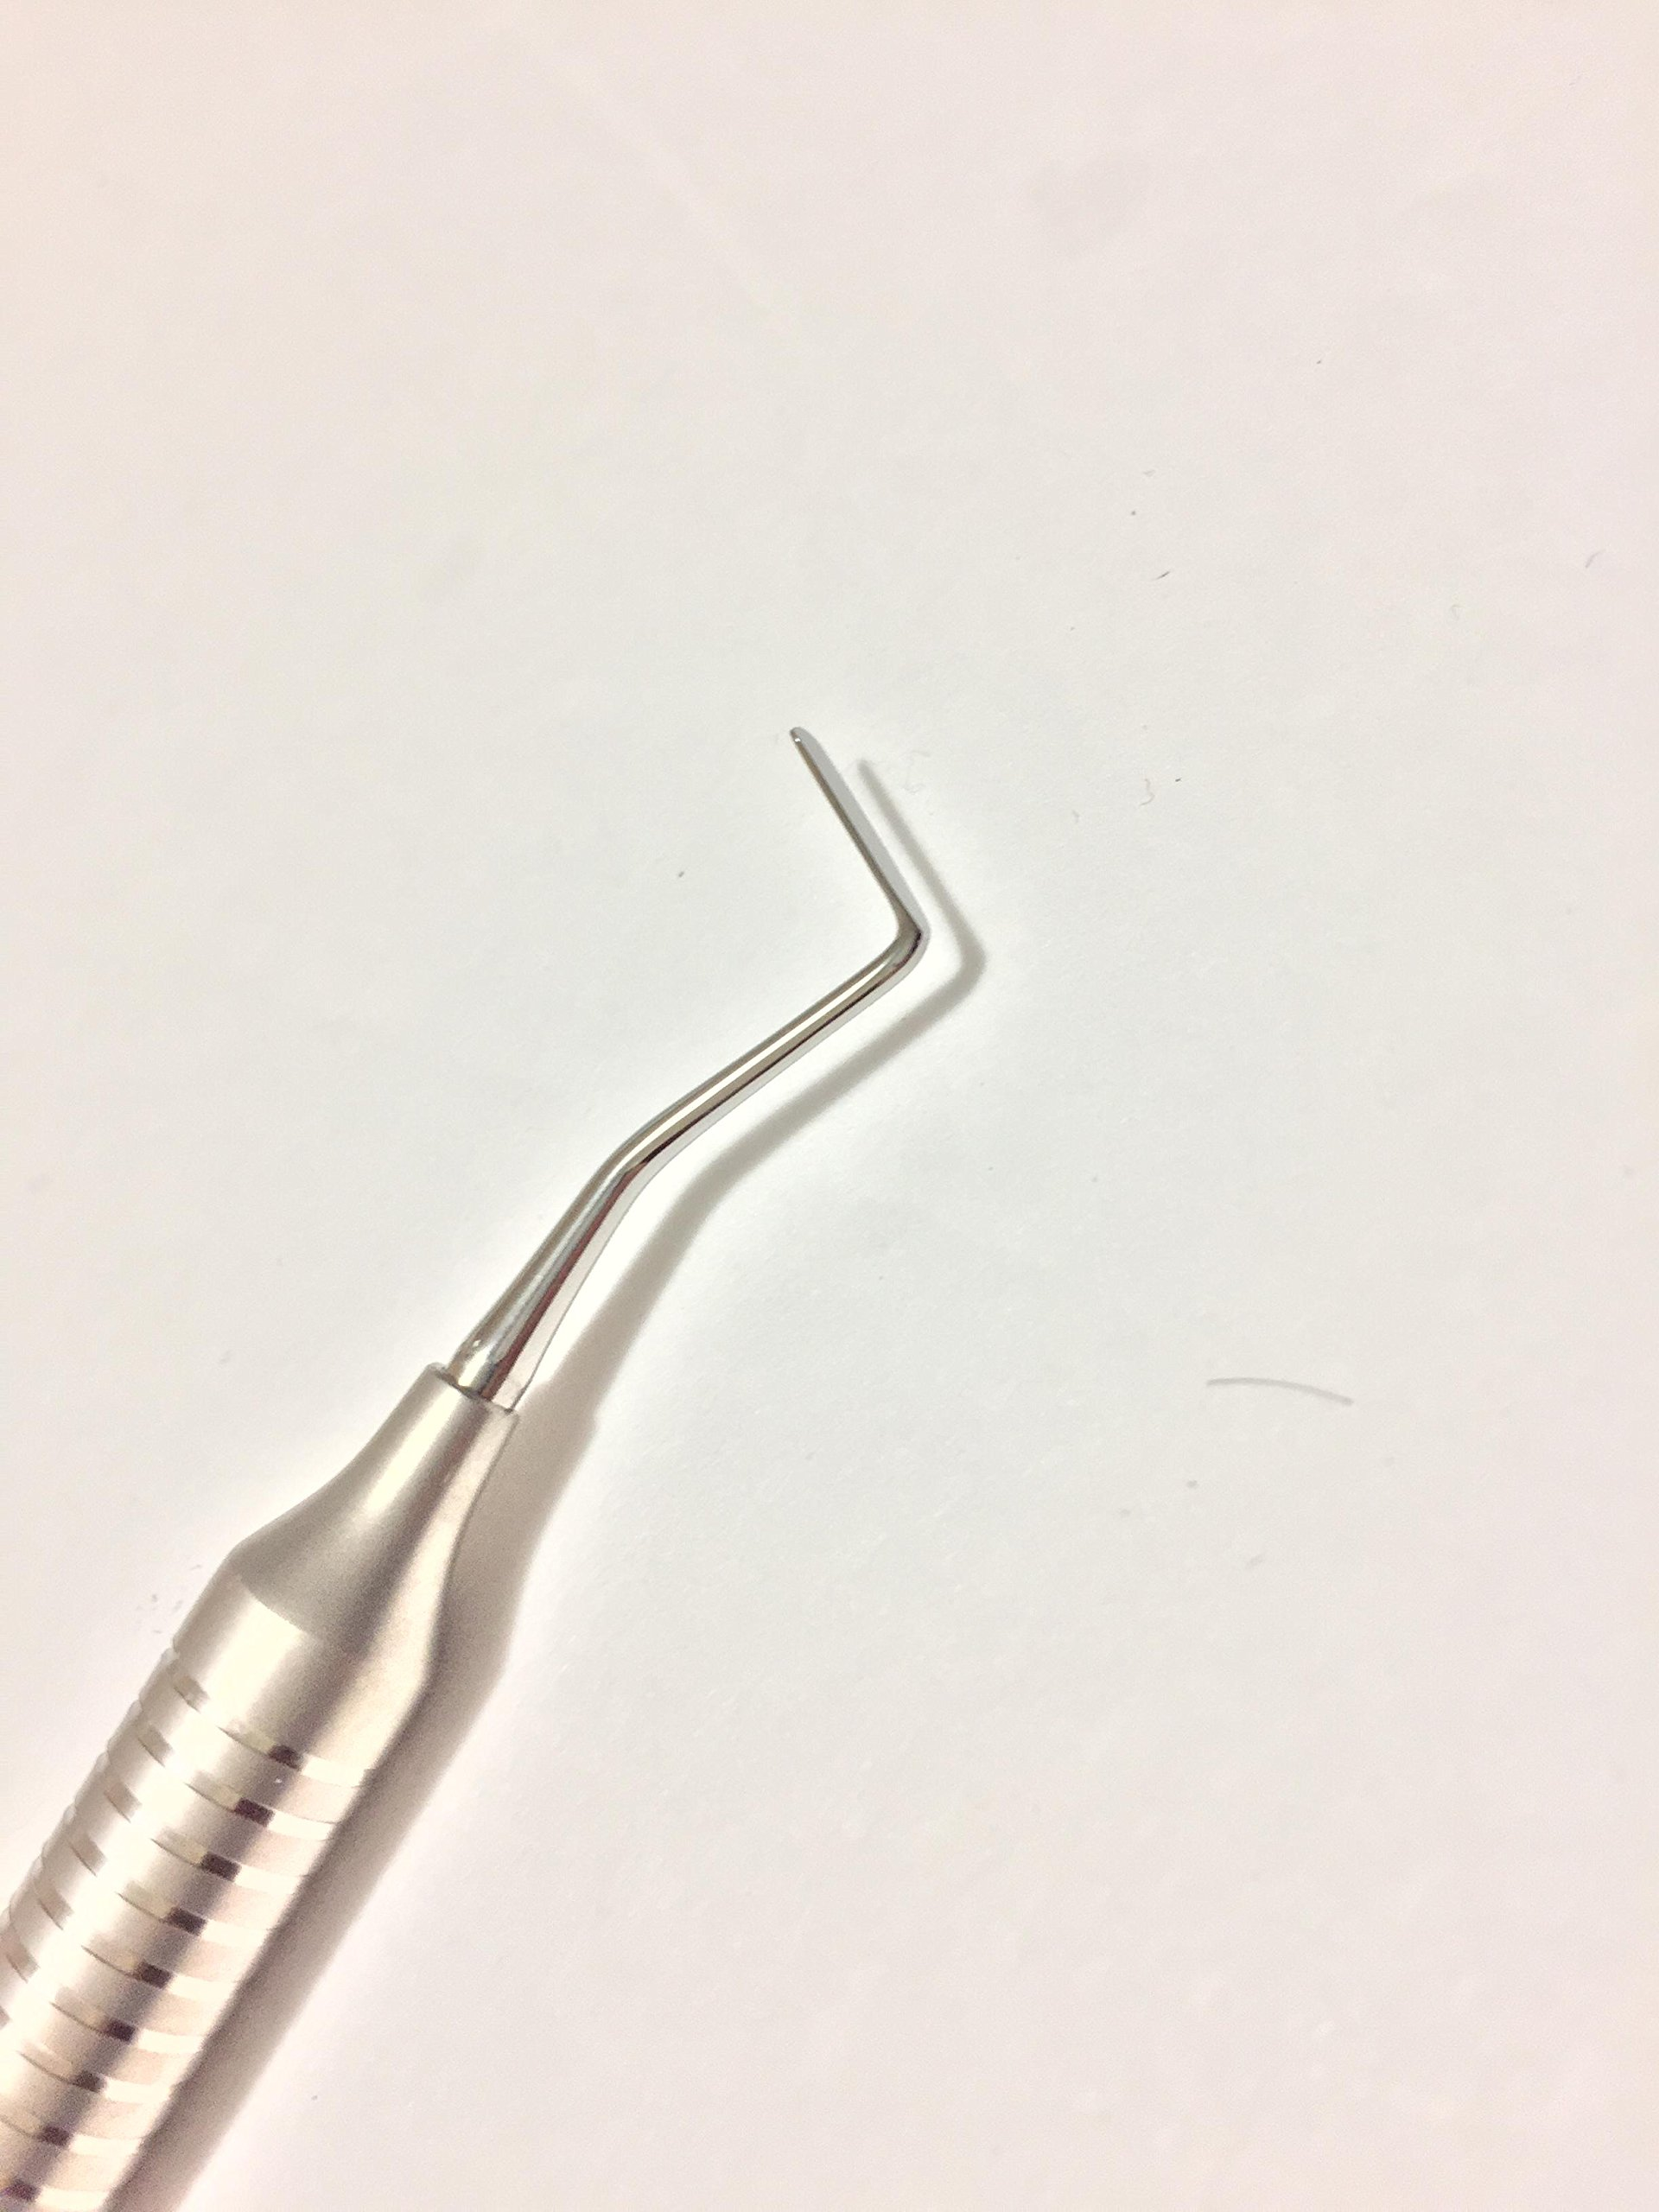 Periotome # 1 Posterior .contra-angled blades for a more frontal approach of the instrument into the posterior.